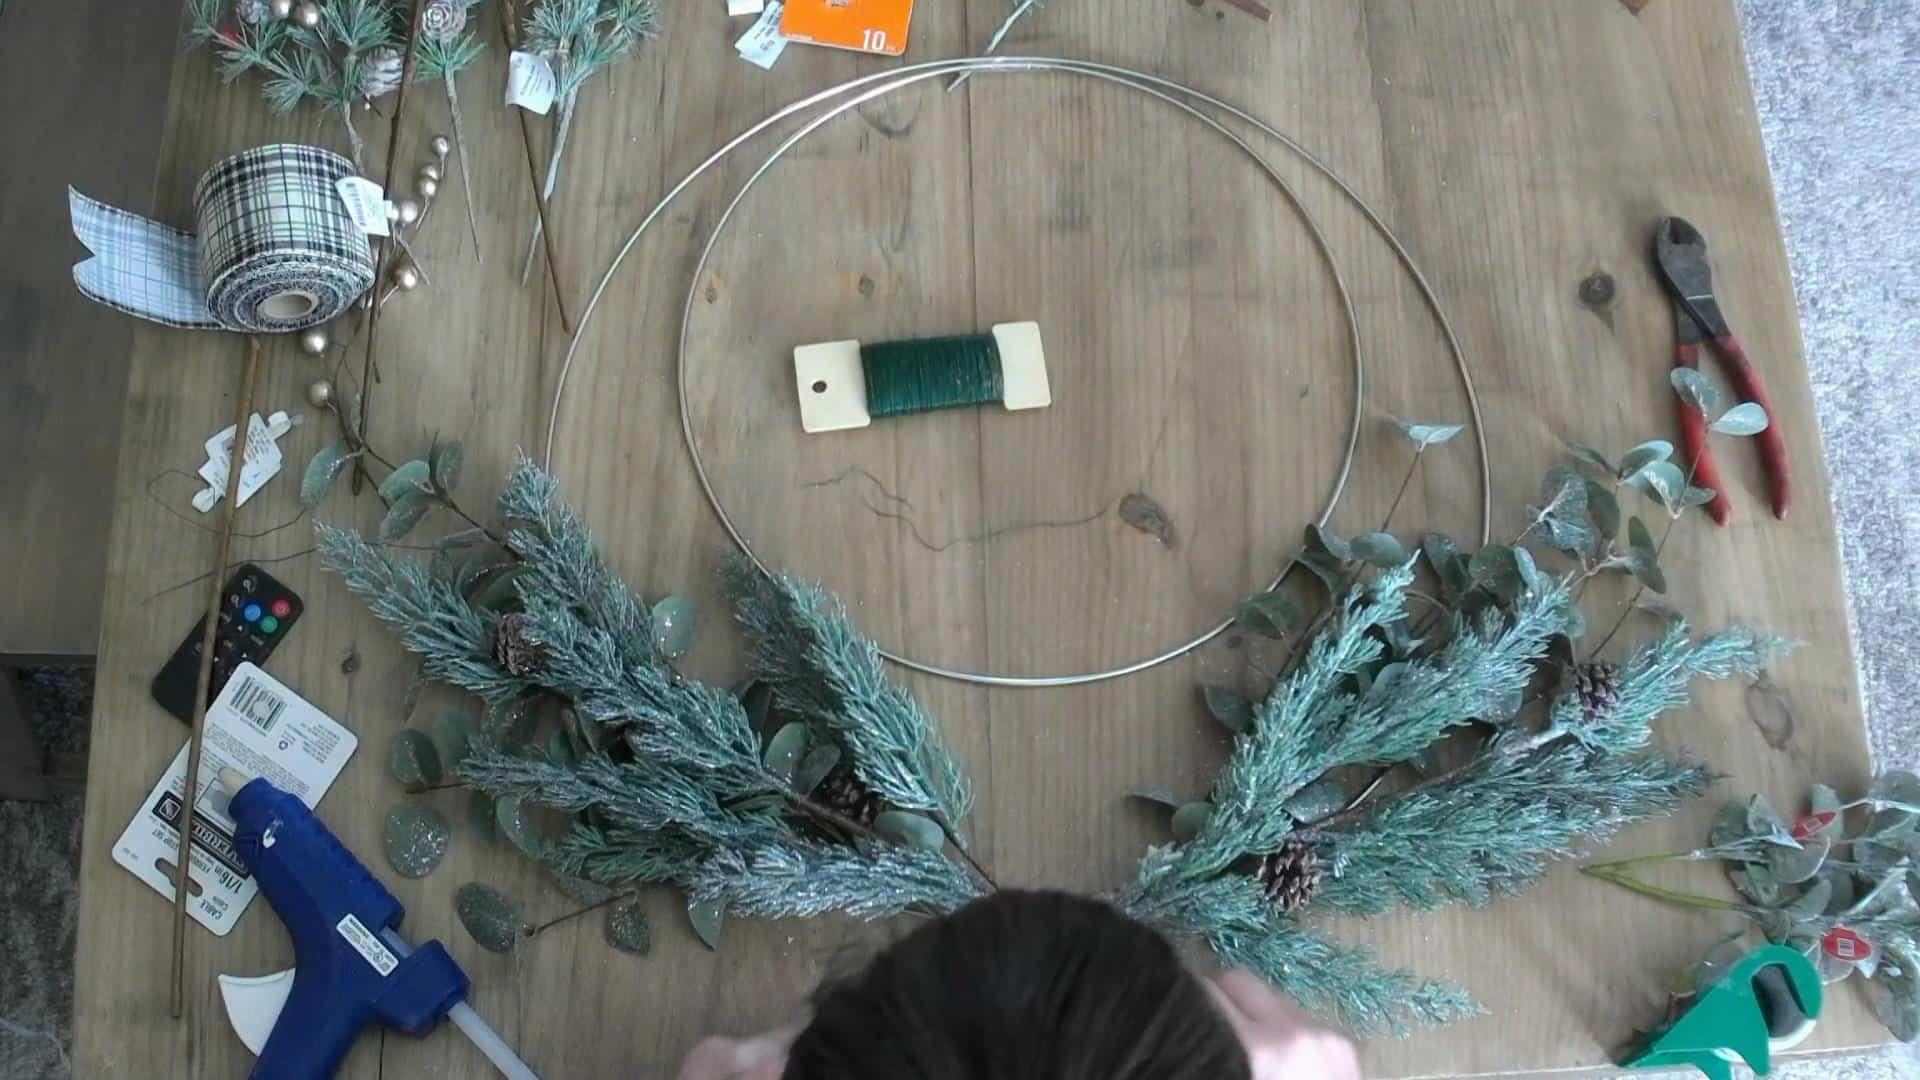 Adding Eucalyptus and pine to the christmas wreath